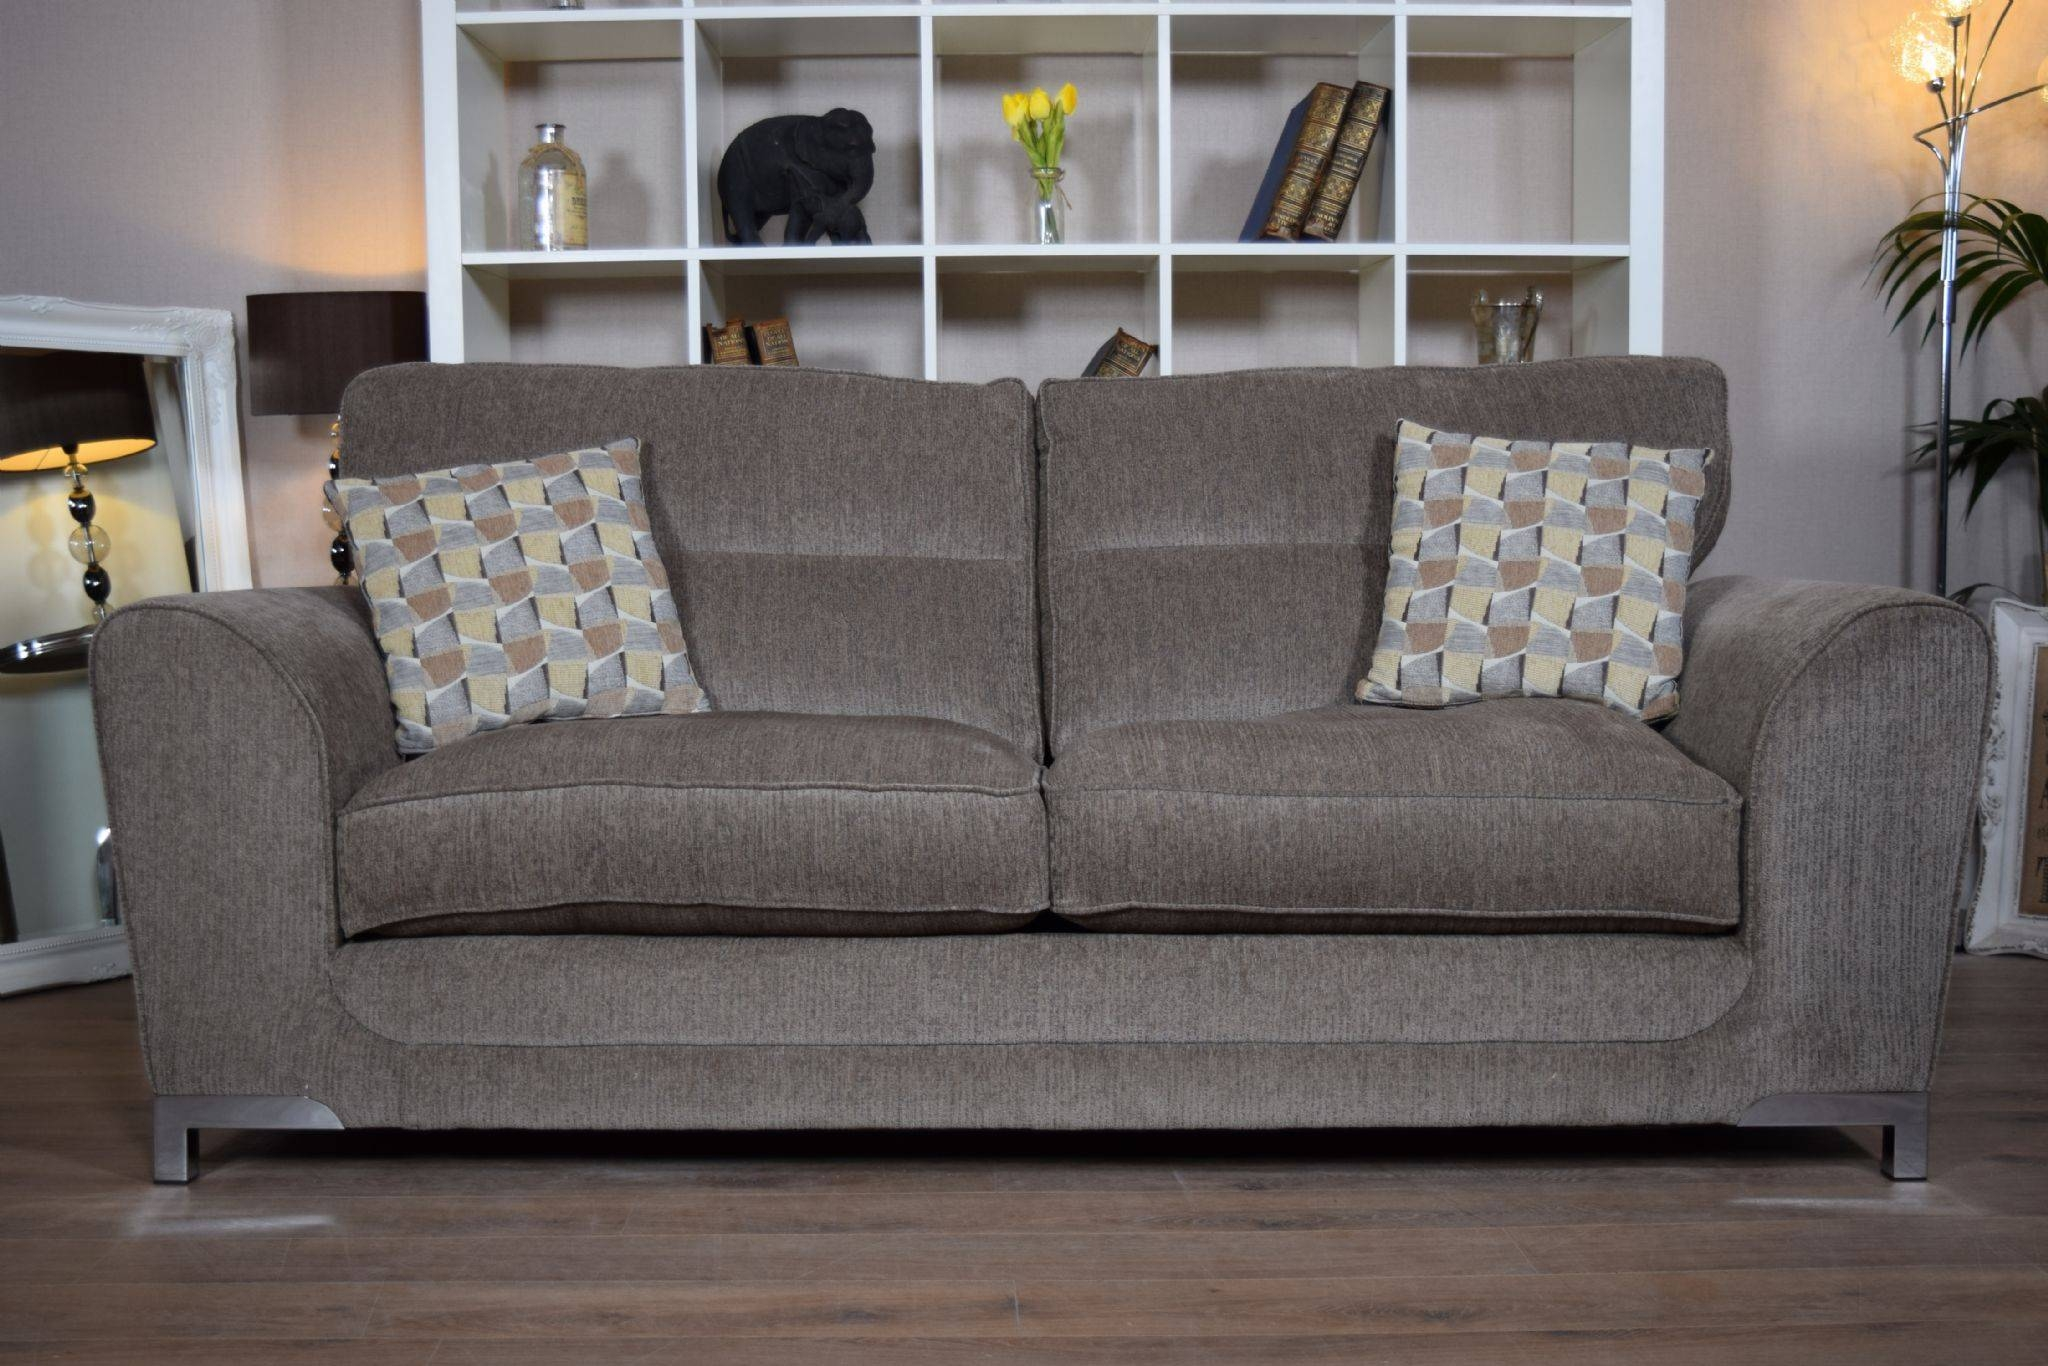 Set Nikki 3 Seater Sofa & Cuddle Chair Suite Set – Mocha Grey Regarding 3 Seater Sofa And Cuddle Chairs (View 12 of 30)